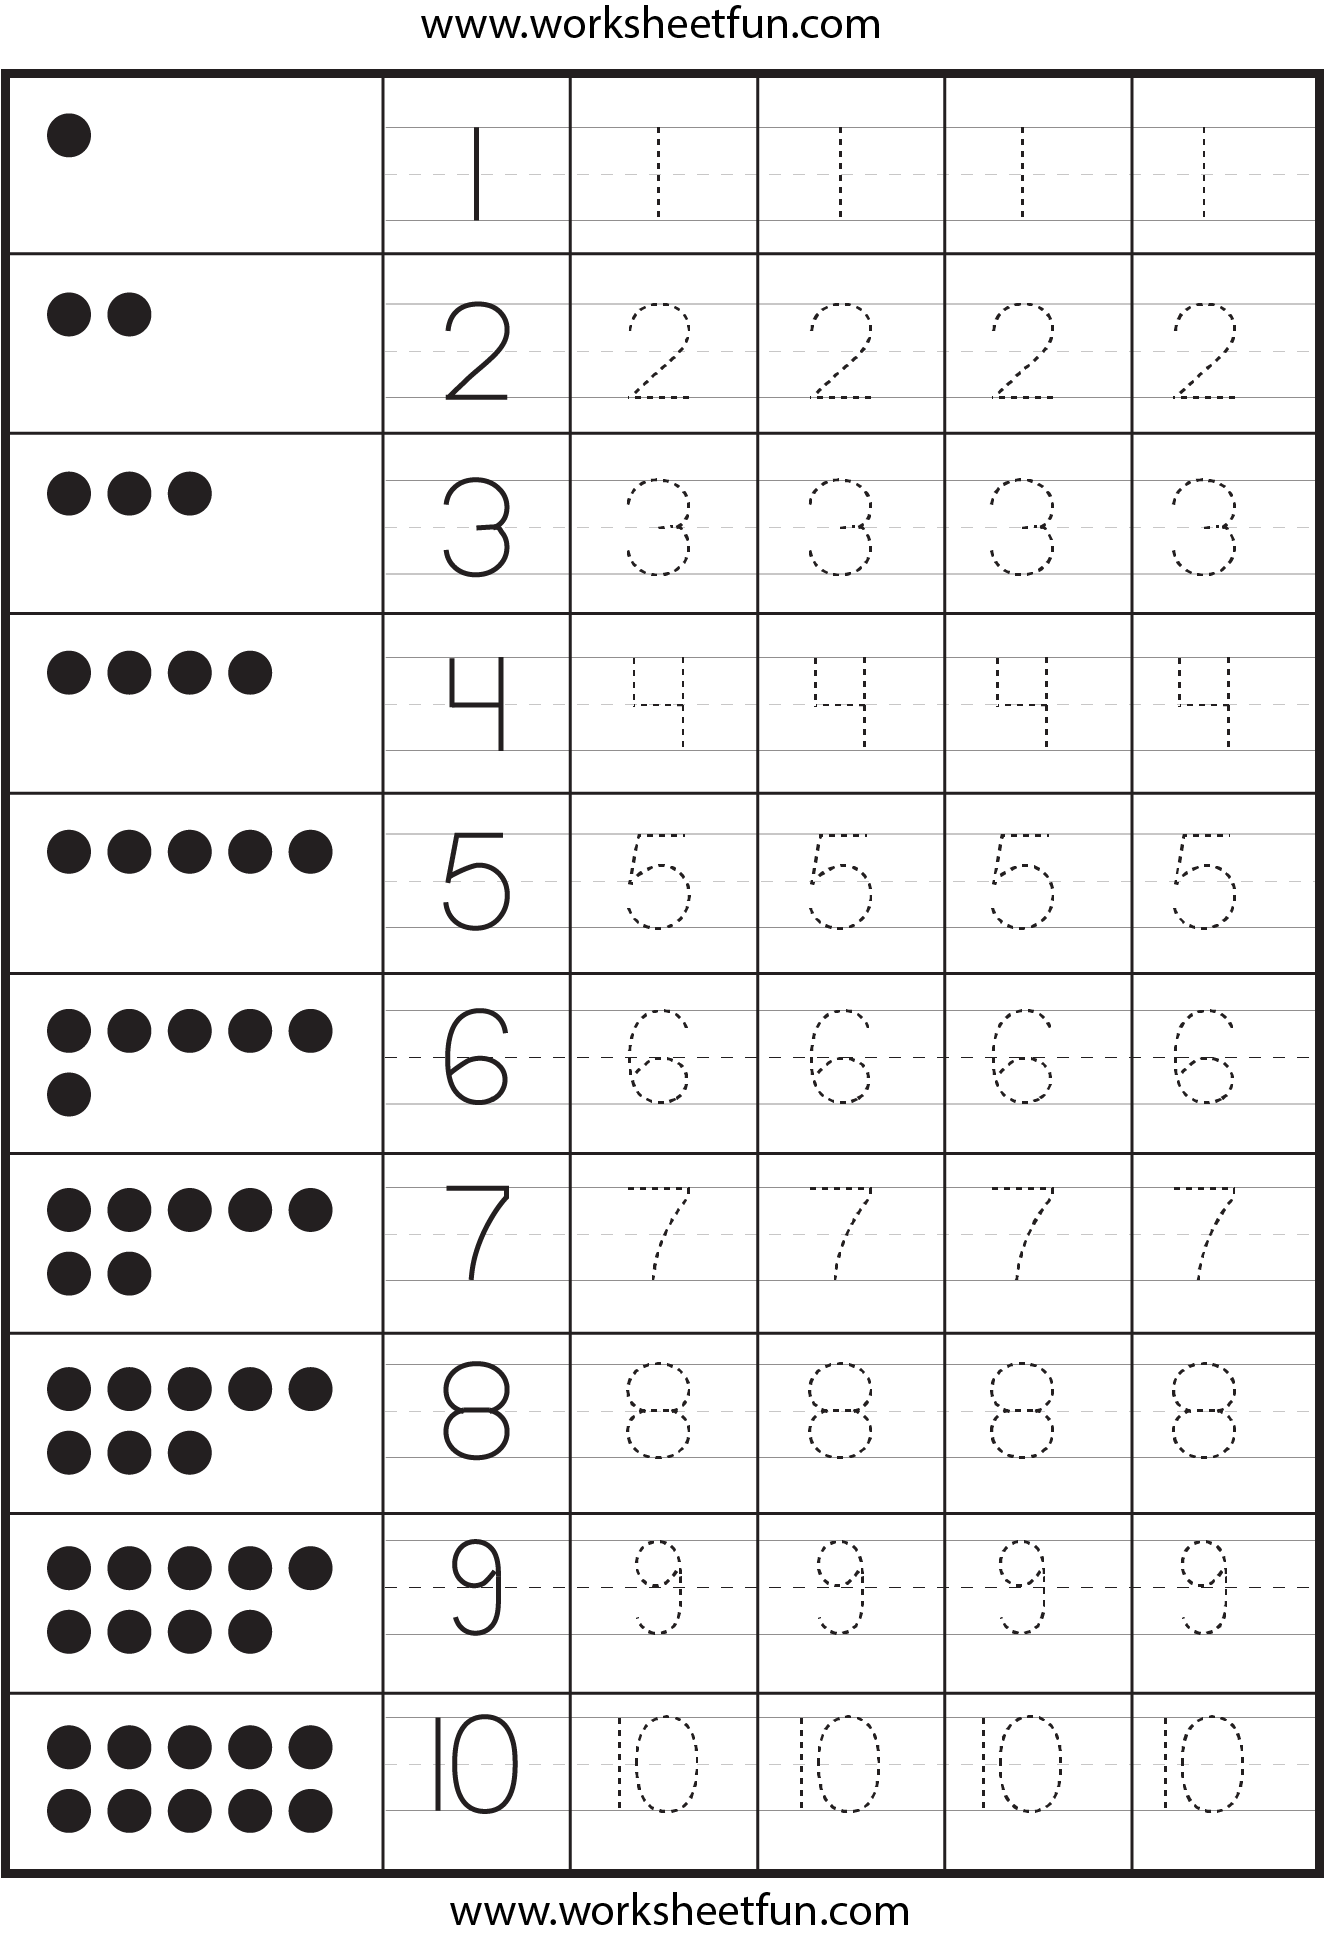 Worksheets Number Handwriting Worksheets tons of tracing number and letter practice handwriting free printable worksheets worksheetfun for preschool kindergarten grade tracing